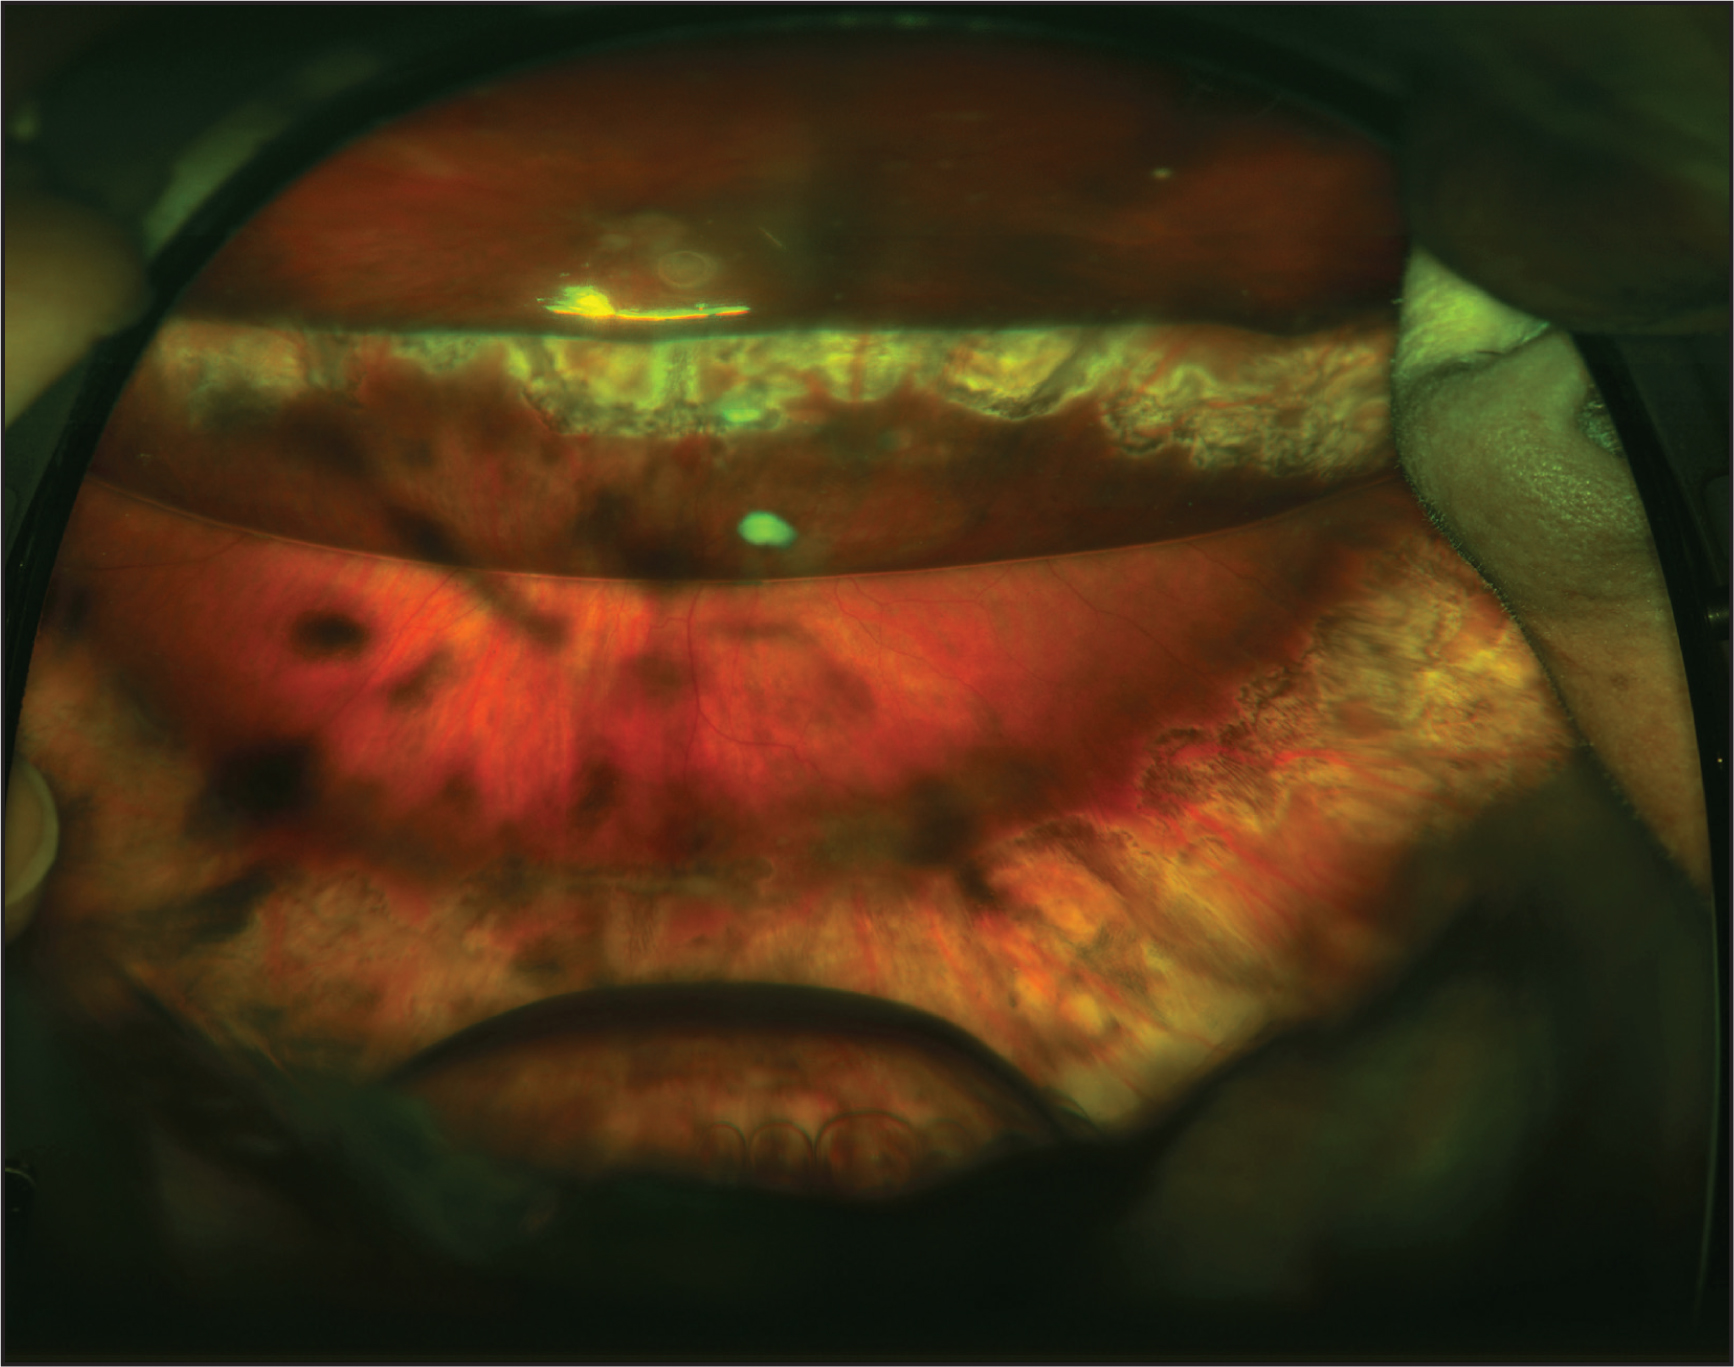 Wide-field fundus photograph demonstrating a large amount of retained intravitreal perfluoro-n-octane (PFO) after valved cannula pars plana vitrectomy for rheg-matogenous retinal detachment at postoperative month 2 (case 5). A large residual PFO bubble is seen inferiorly, and a partial residual C3F8 gas fill is seen superiorly.